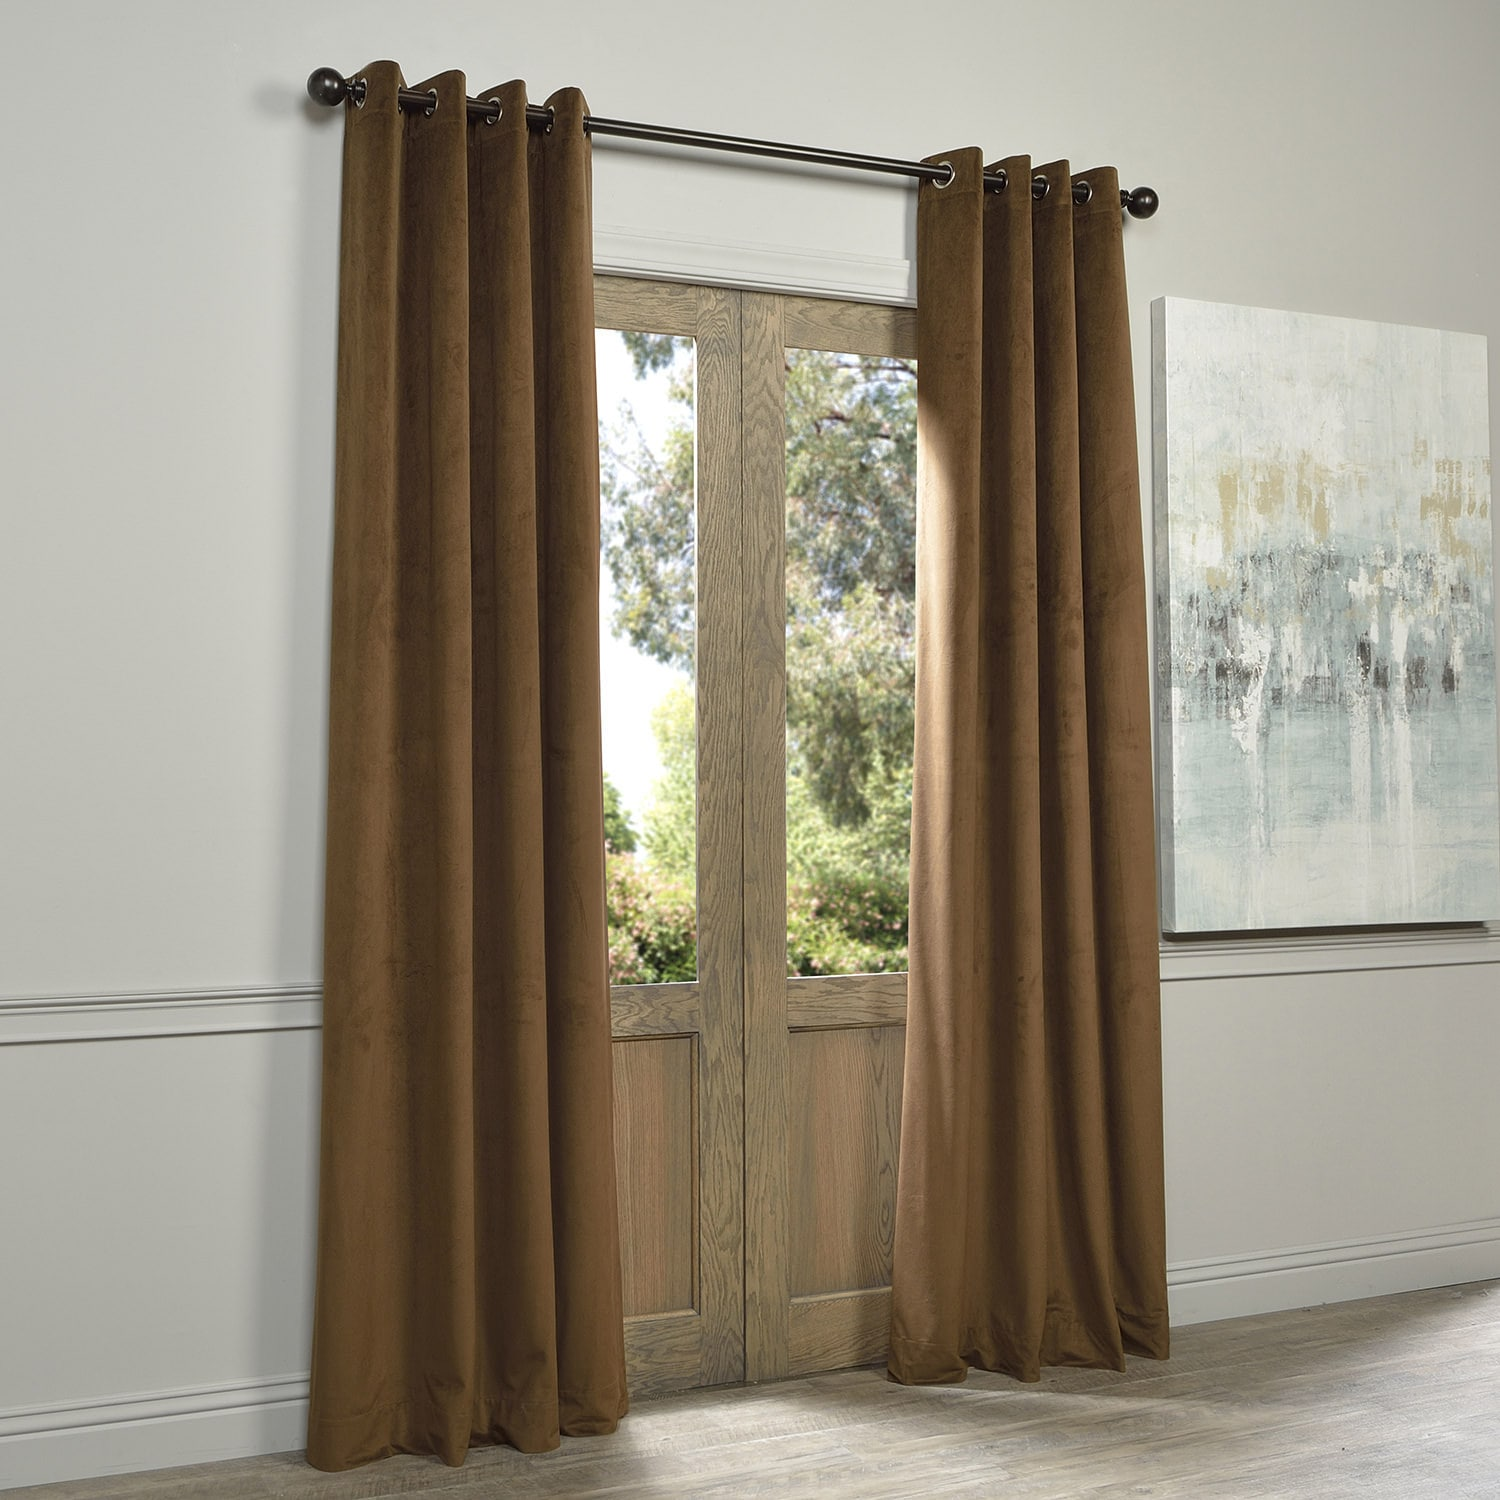 Eff Signature Velvet Grommet 108 Inch Blackout Curtain Panel 50 X On Free Shipping Today 9740201